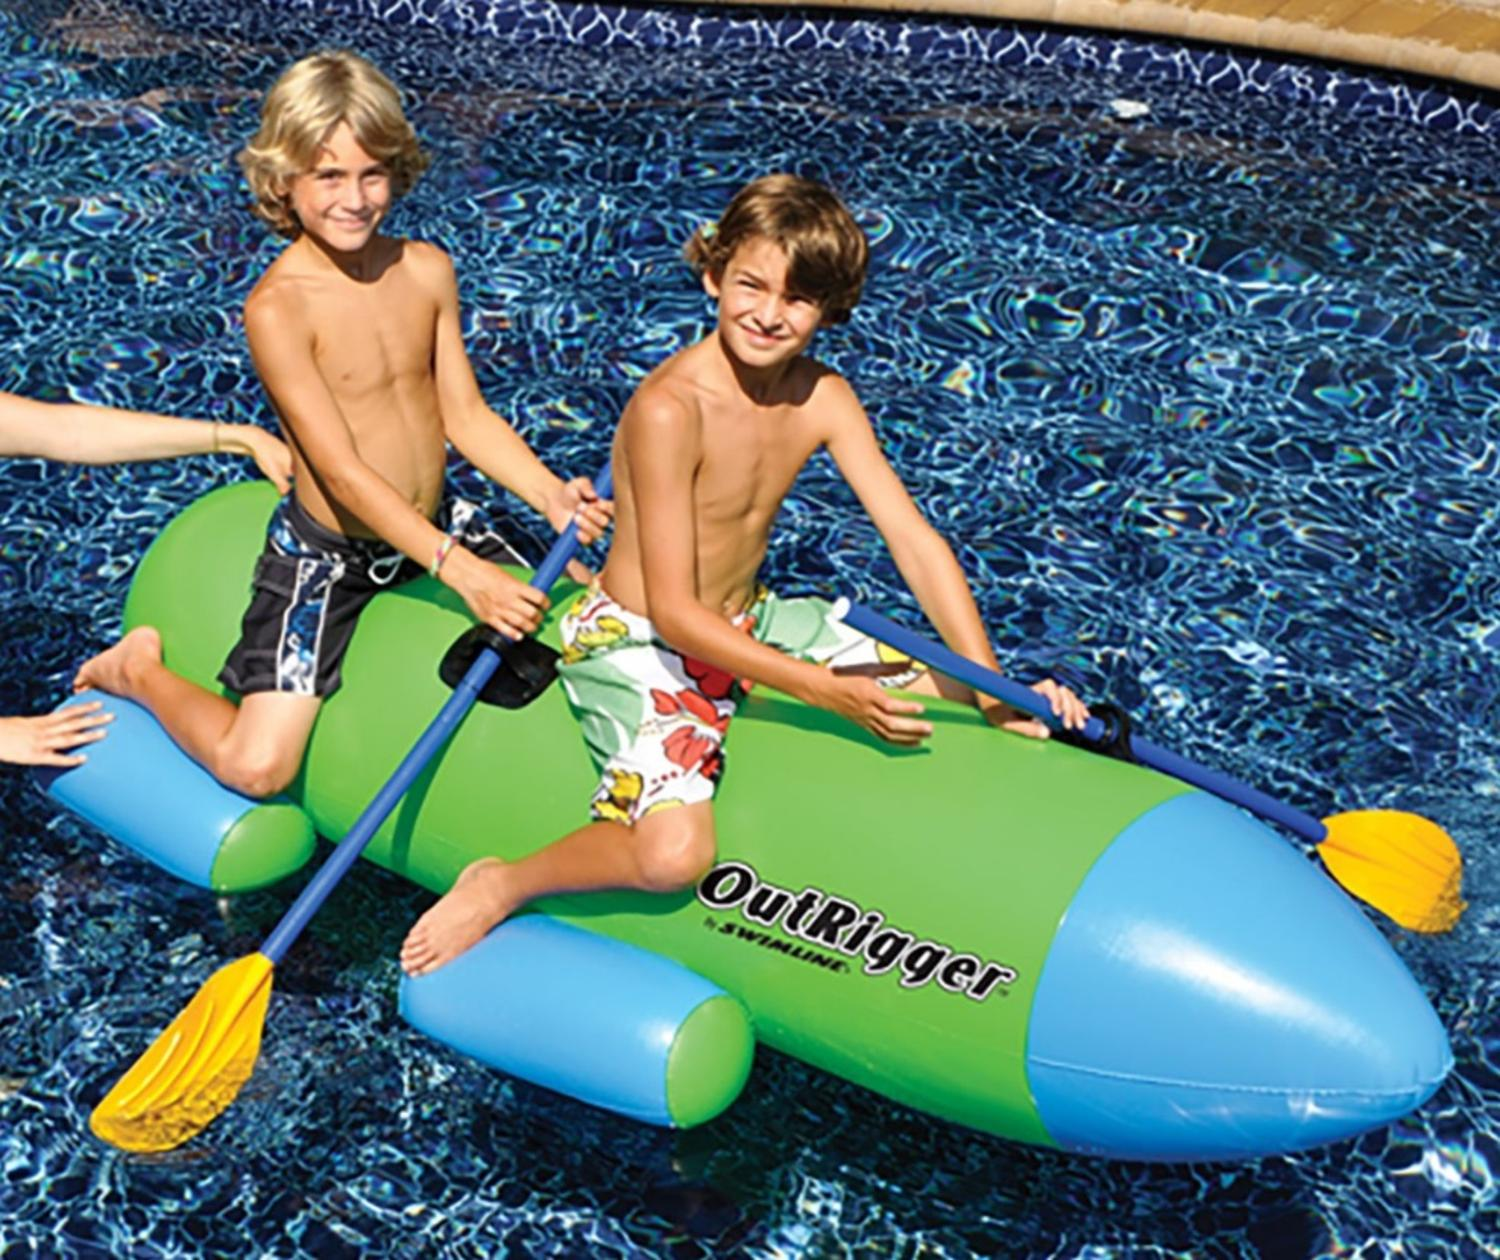 Outrigger Pool Float Inflatable Pool Toy by Swim Central